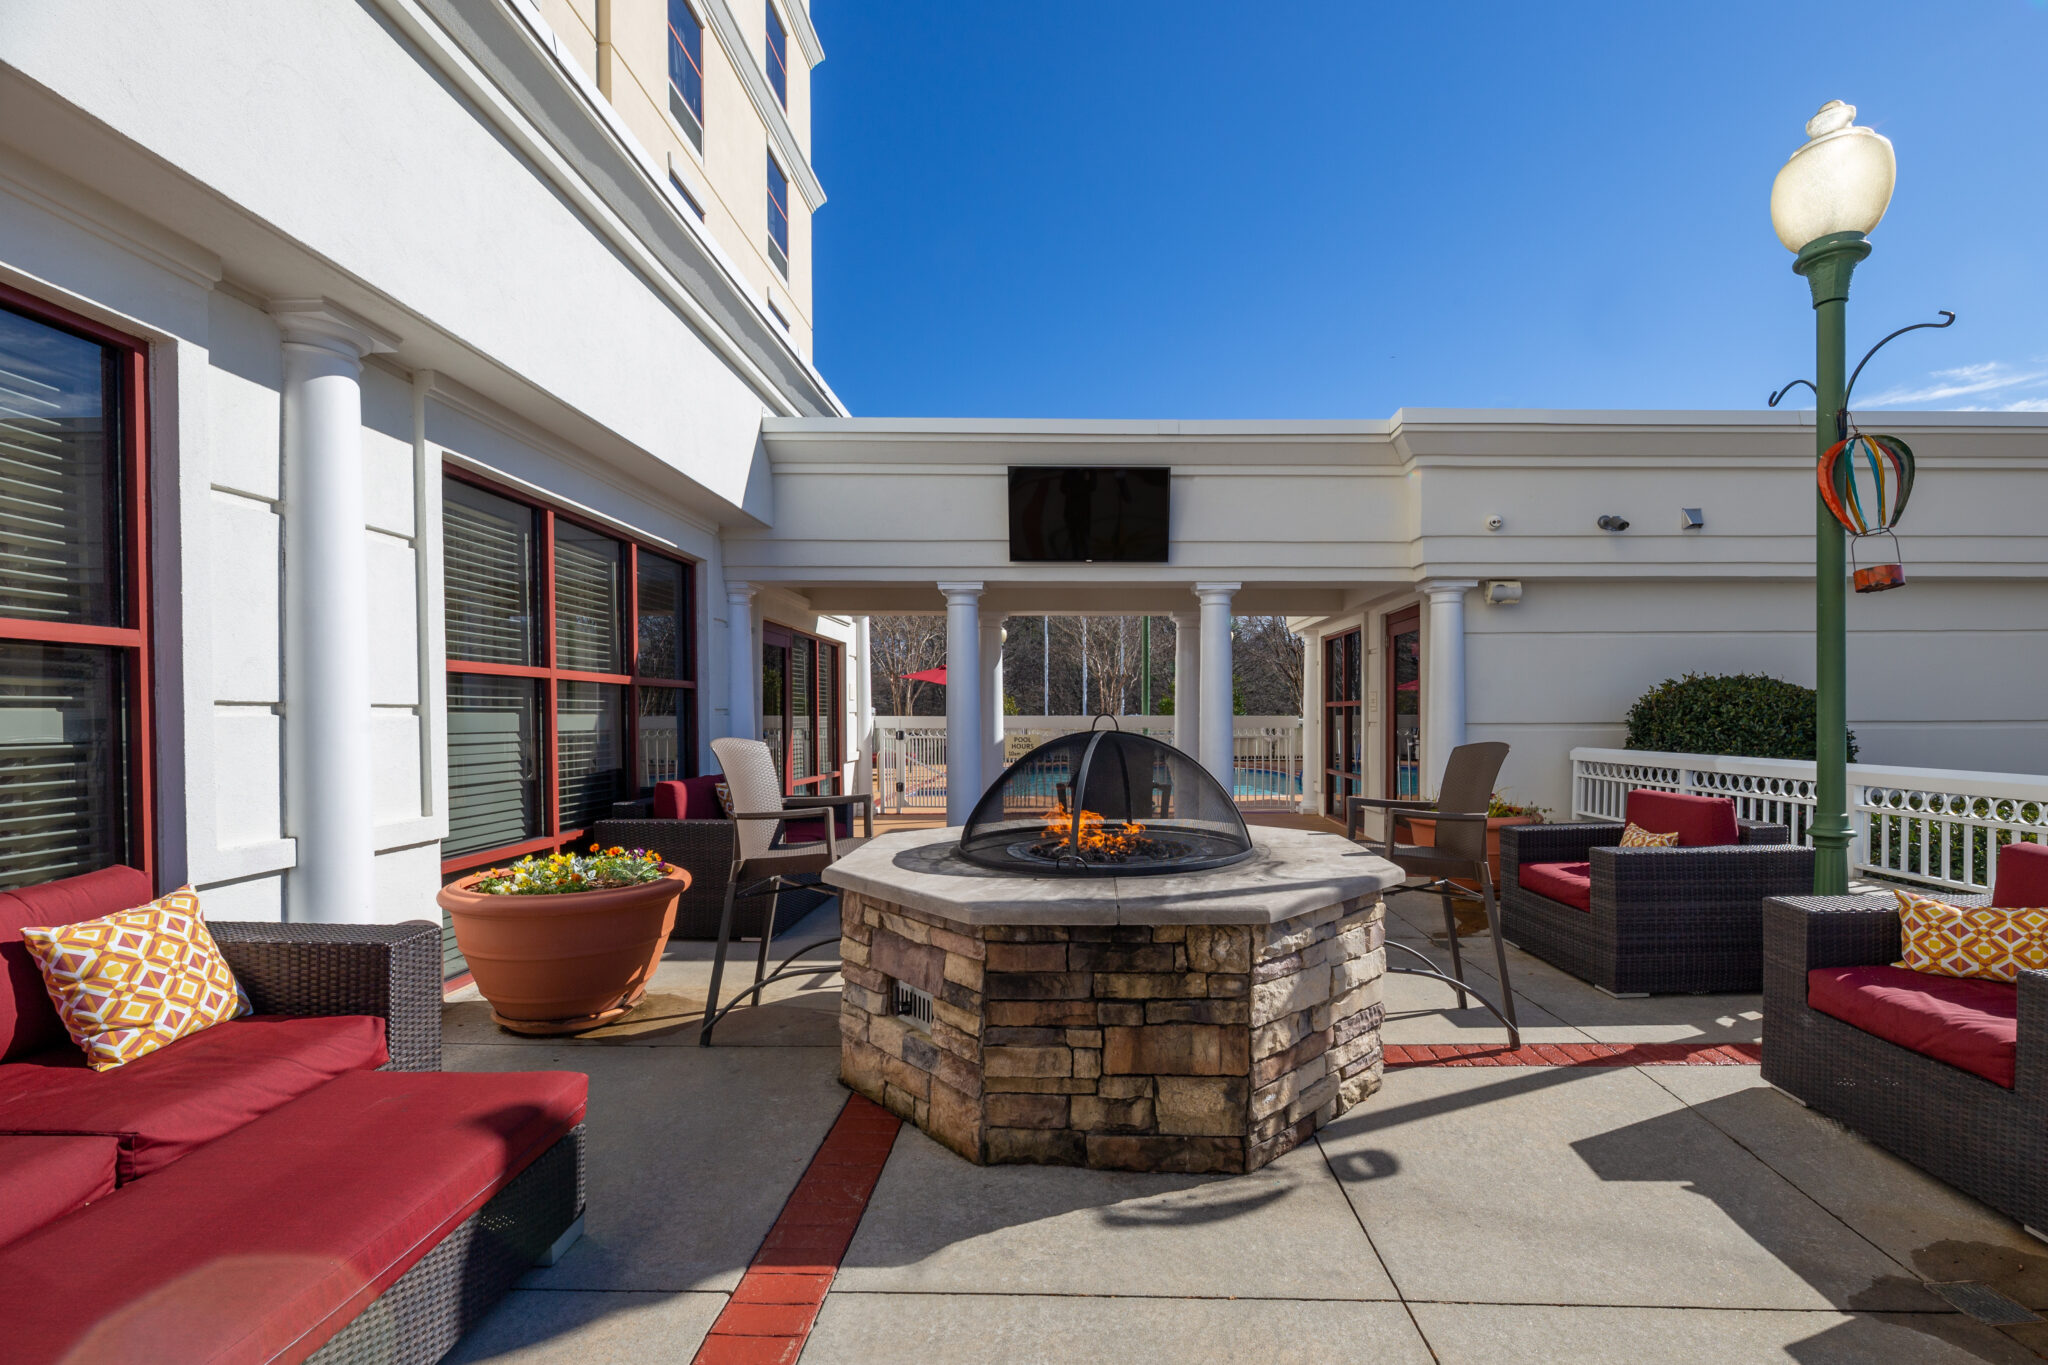 Hampton Inn Lawrenceville Duluth ATLDM Outdoor Space-1